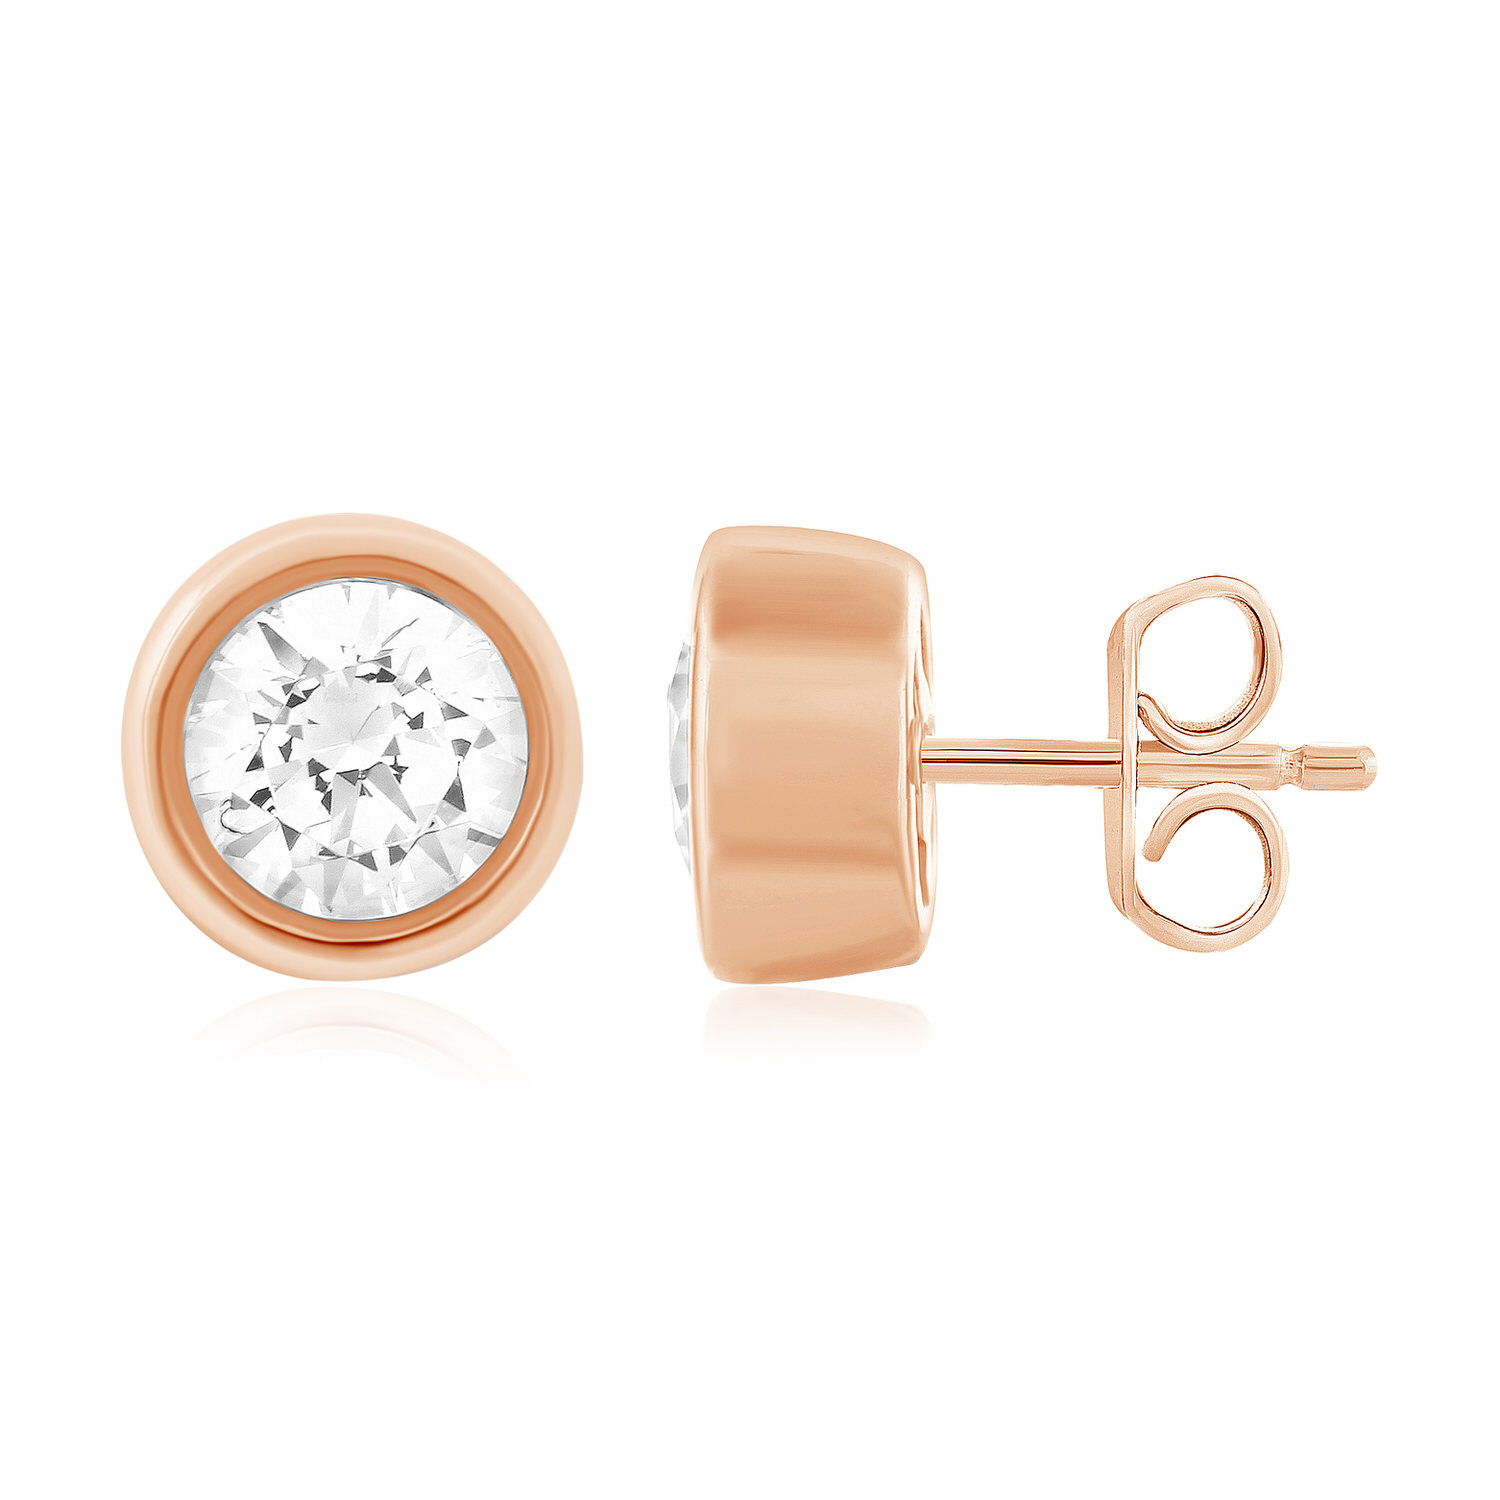 Leo Diamond Solitaire Earrings 5/8 cttw Bezel-set 14K Rose Gold